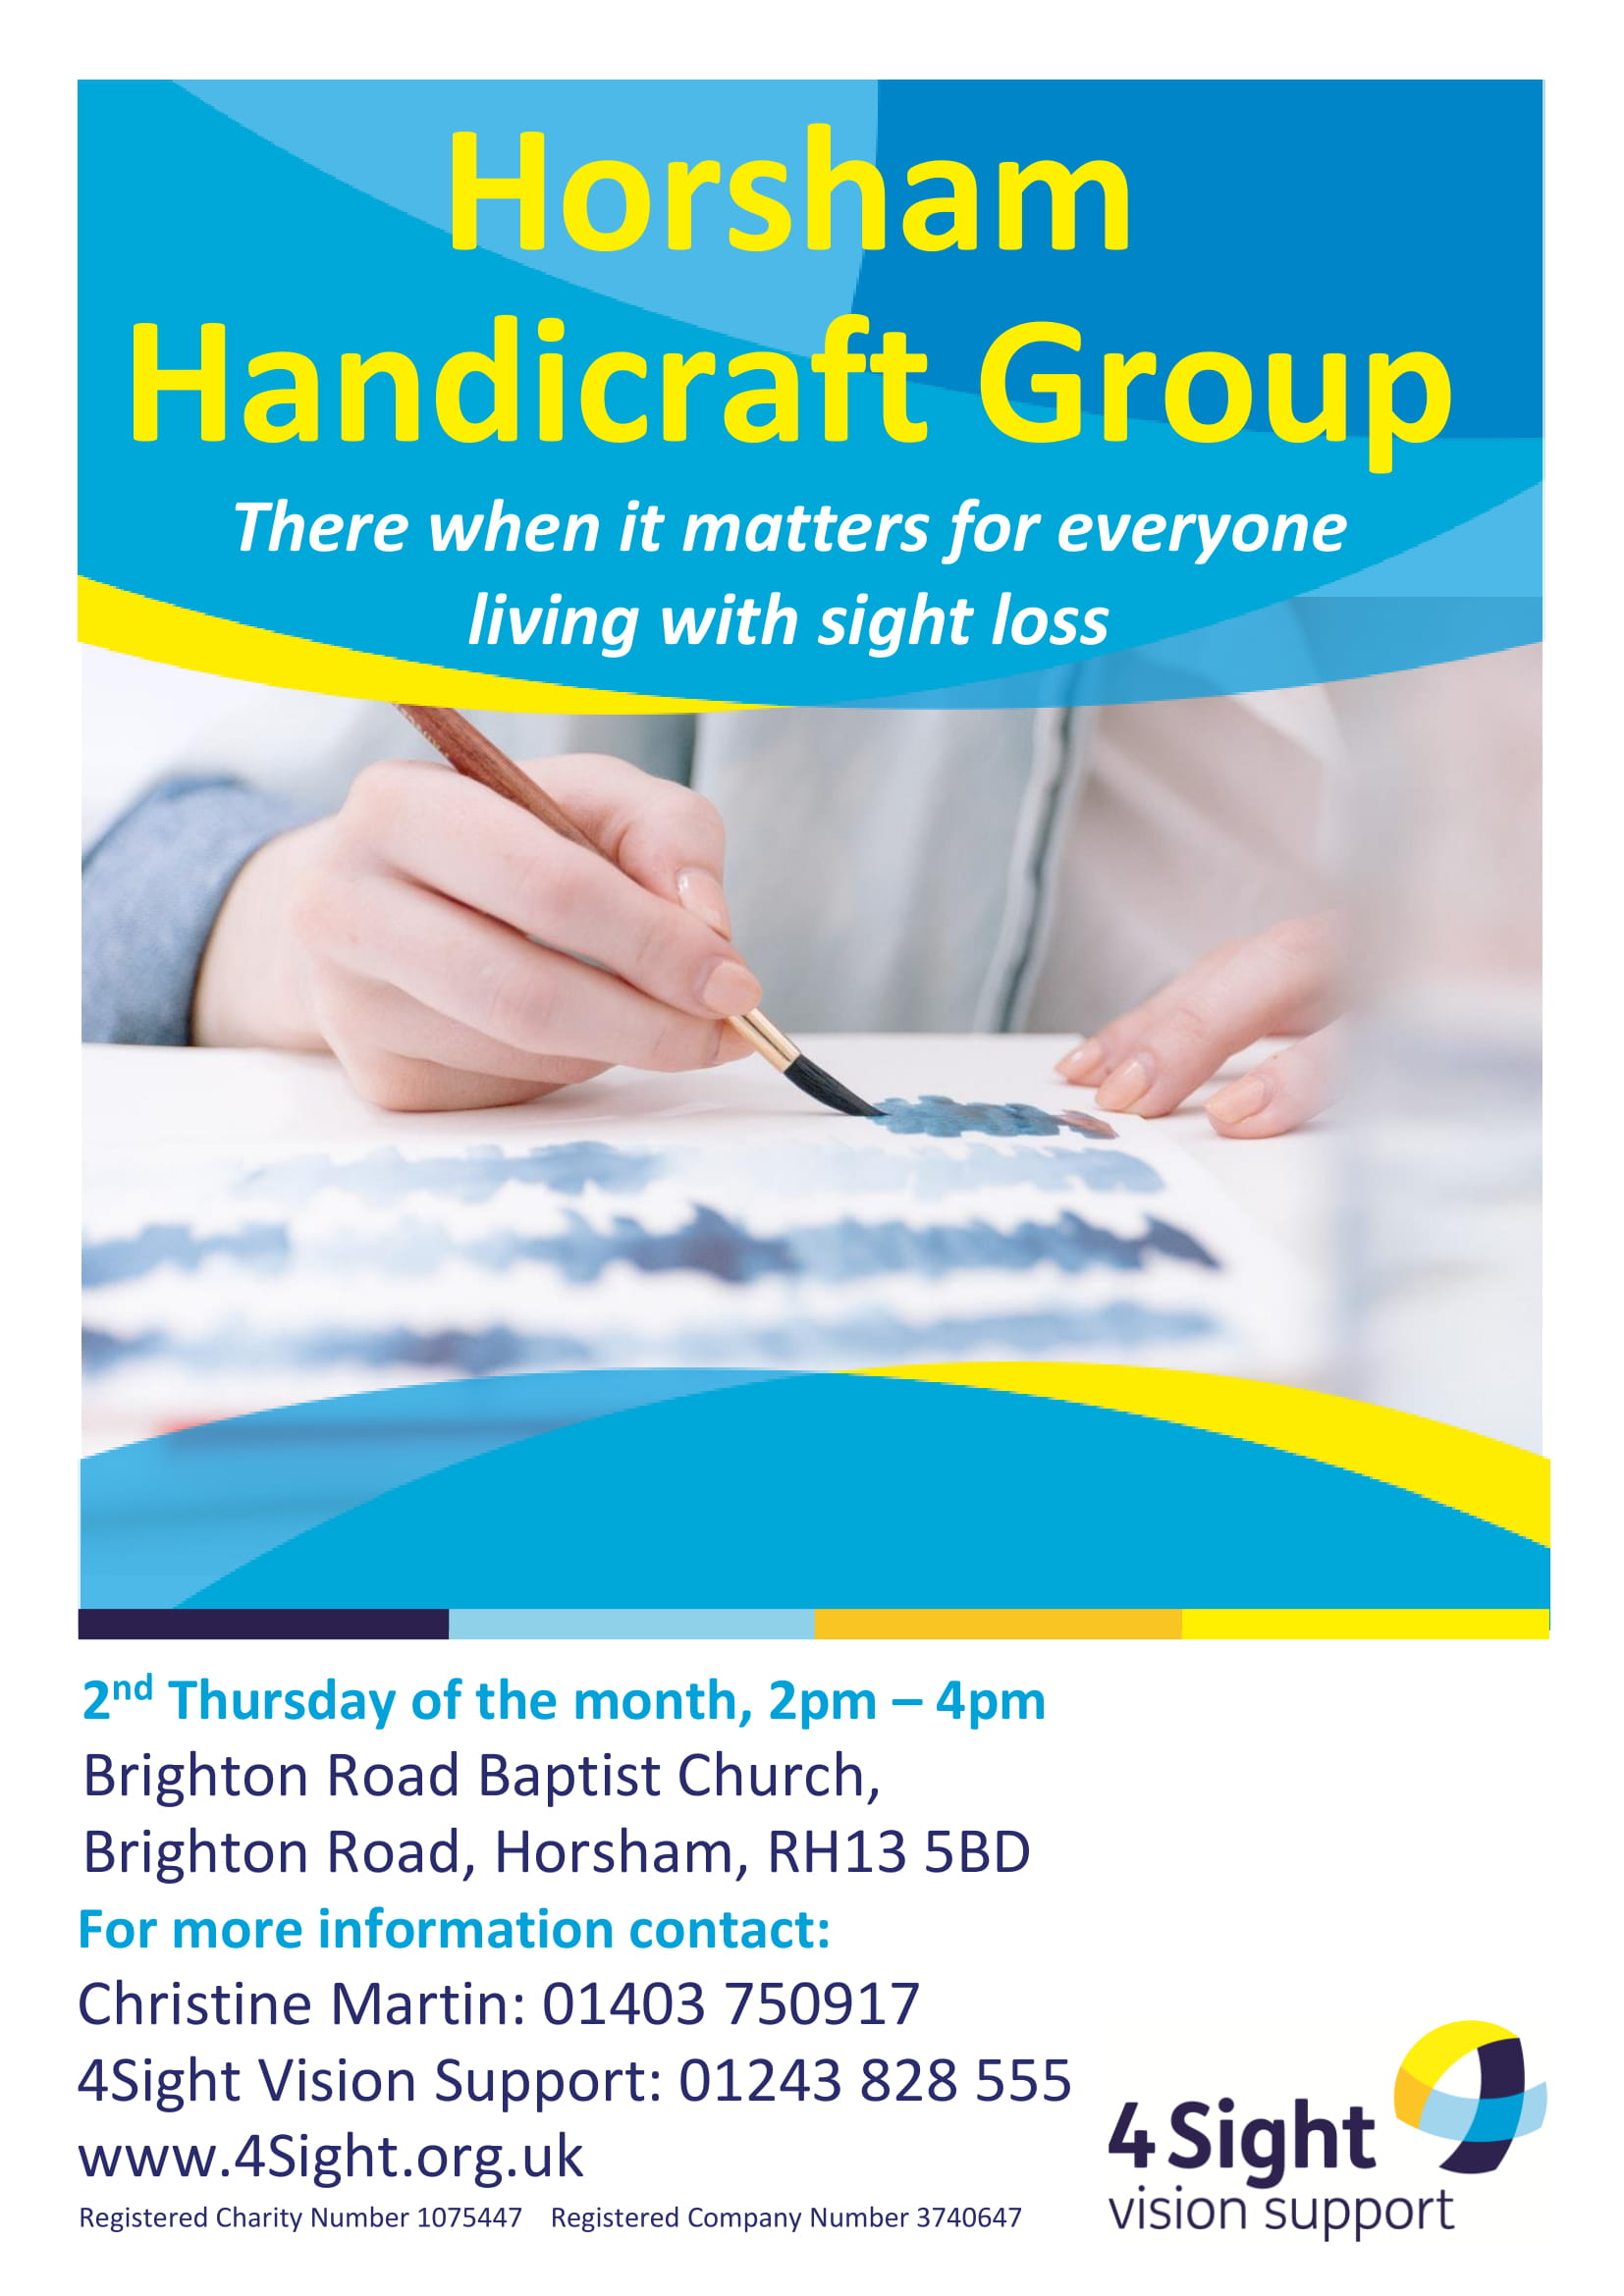 Horsham Handicraft Group-1